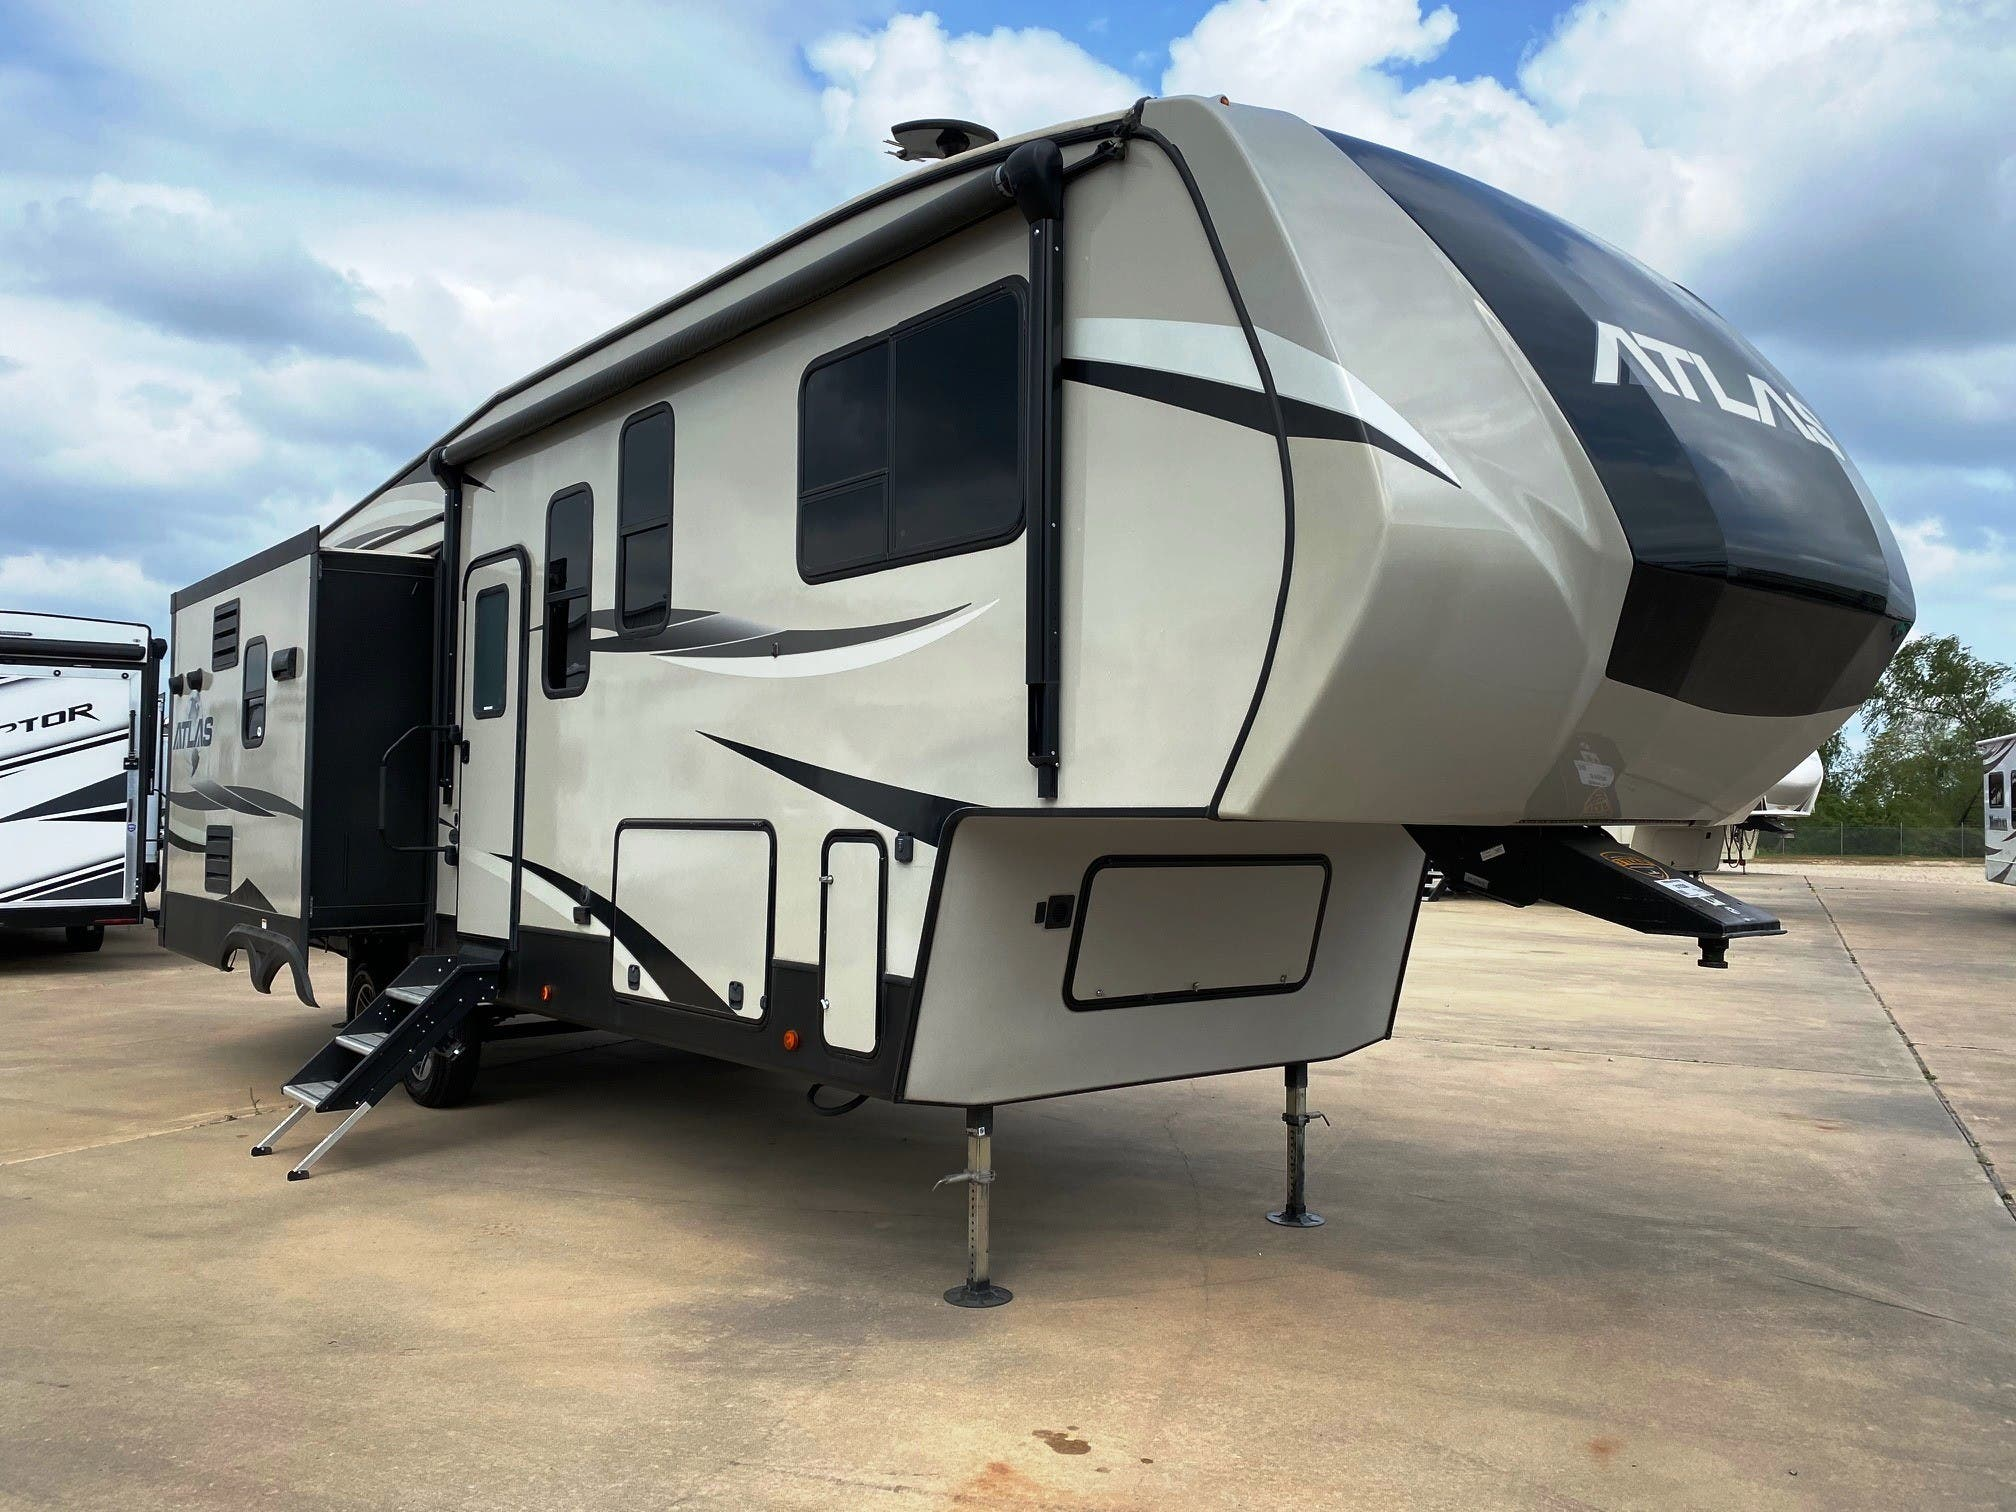 2019 Dutchmen Atlas 2952rlf Rvs For Sale In Texas New Mexico Holiday World Rv Dealerships In Texas New Mexico